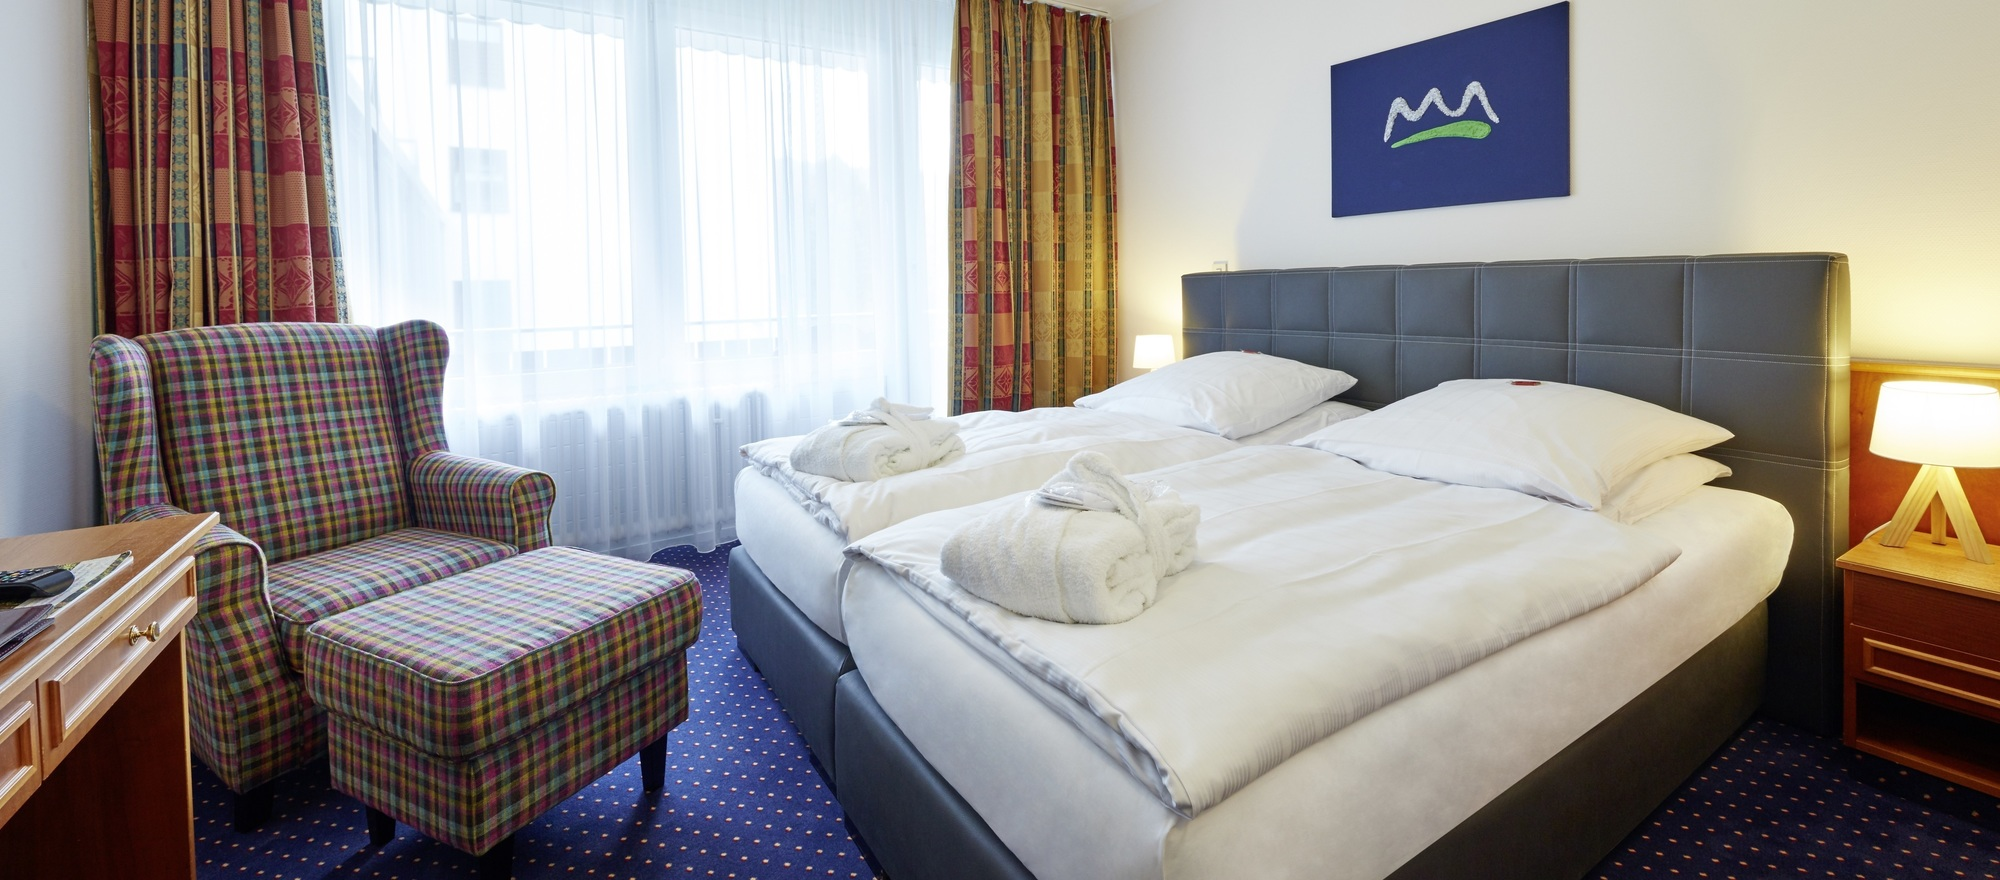 Comfortable double rooms at the 4-star hotel Ringhotel Waldhotel Baerenstein in Horn-Bad Meinberg